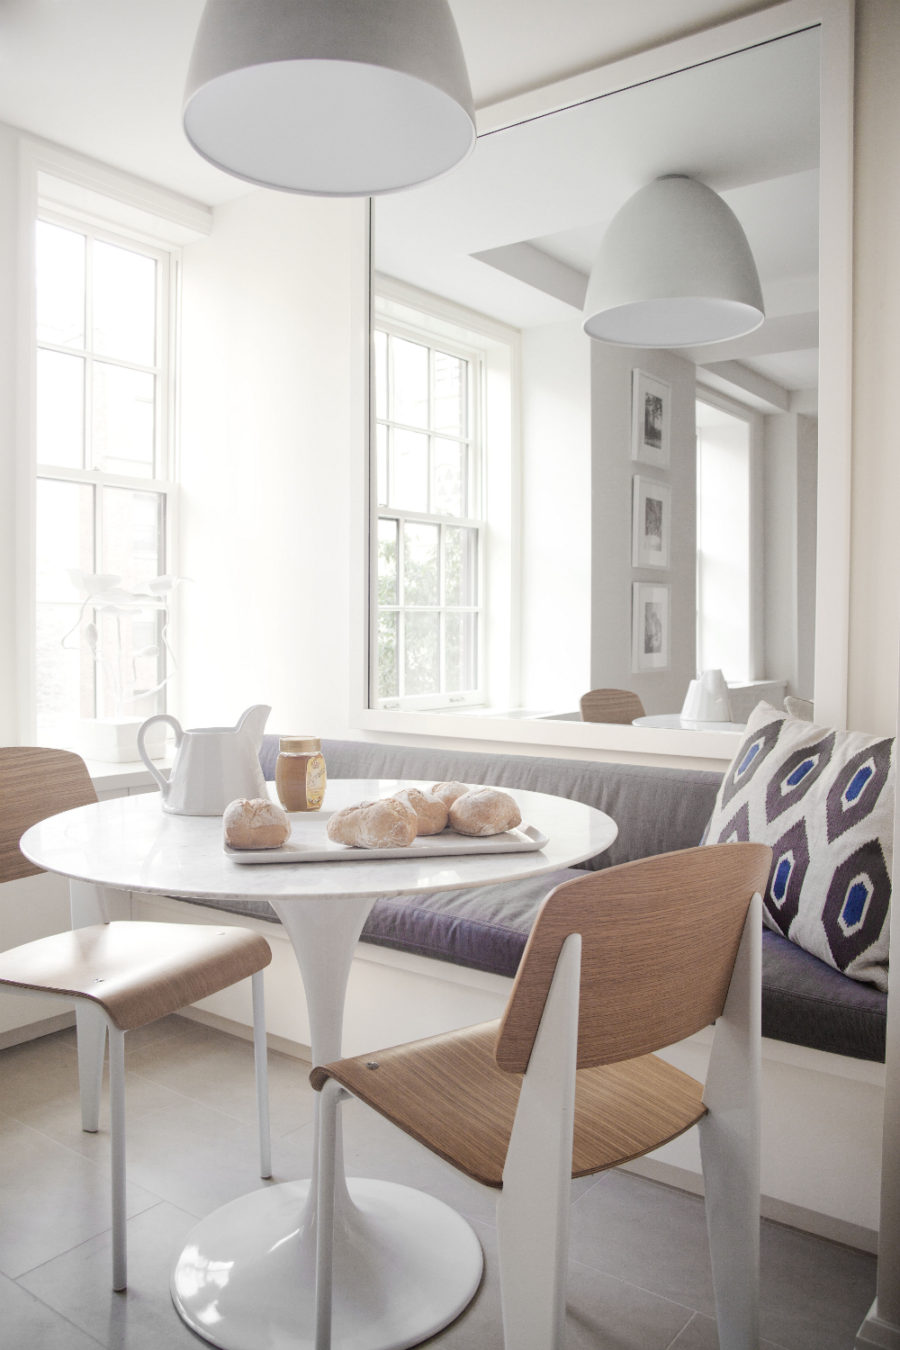 Modern Breakfast Nook Ideas That Will Make You Want To